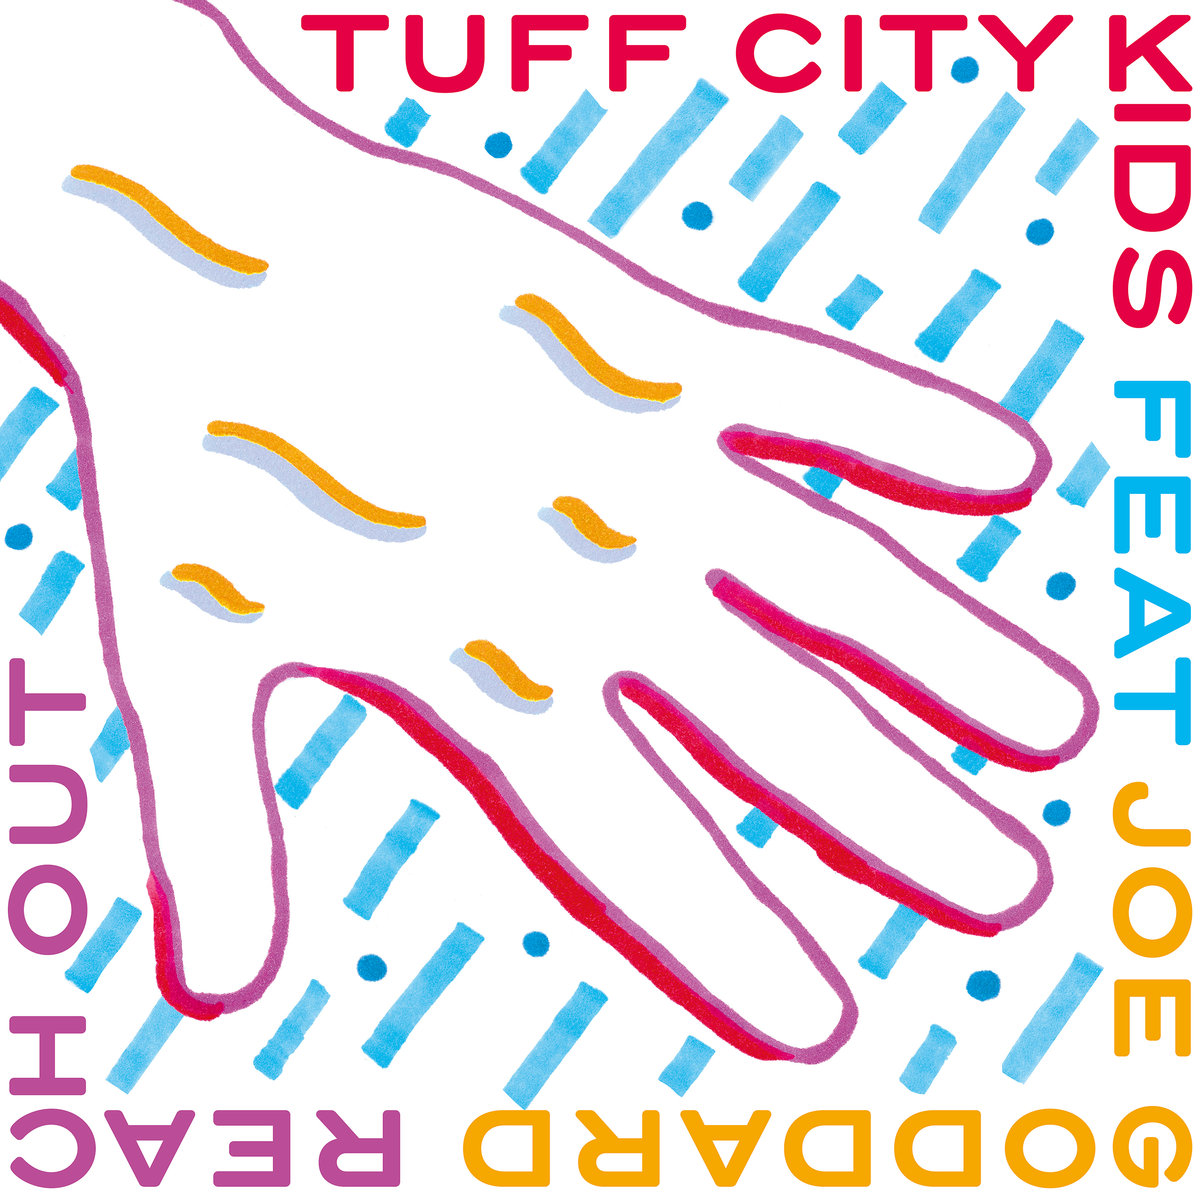 Tuff-City-Kids-Joe-Goddard